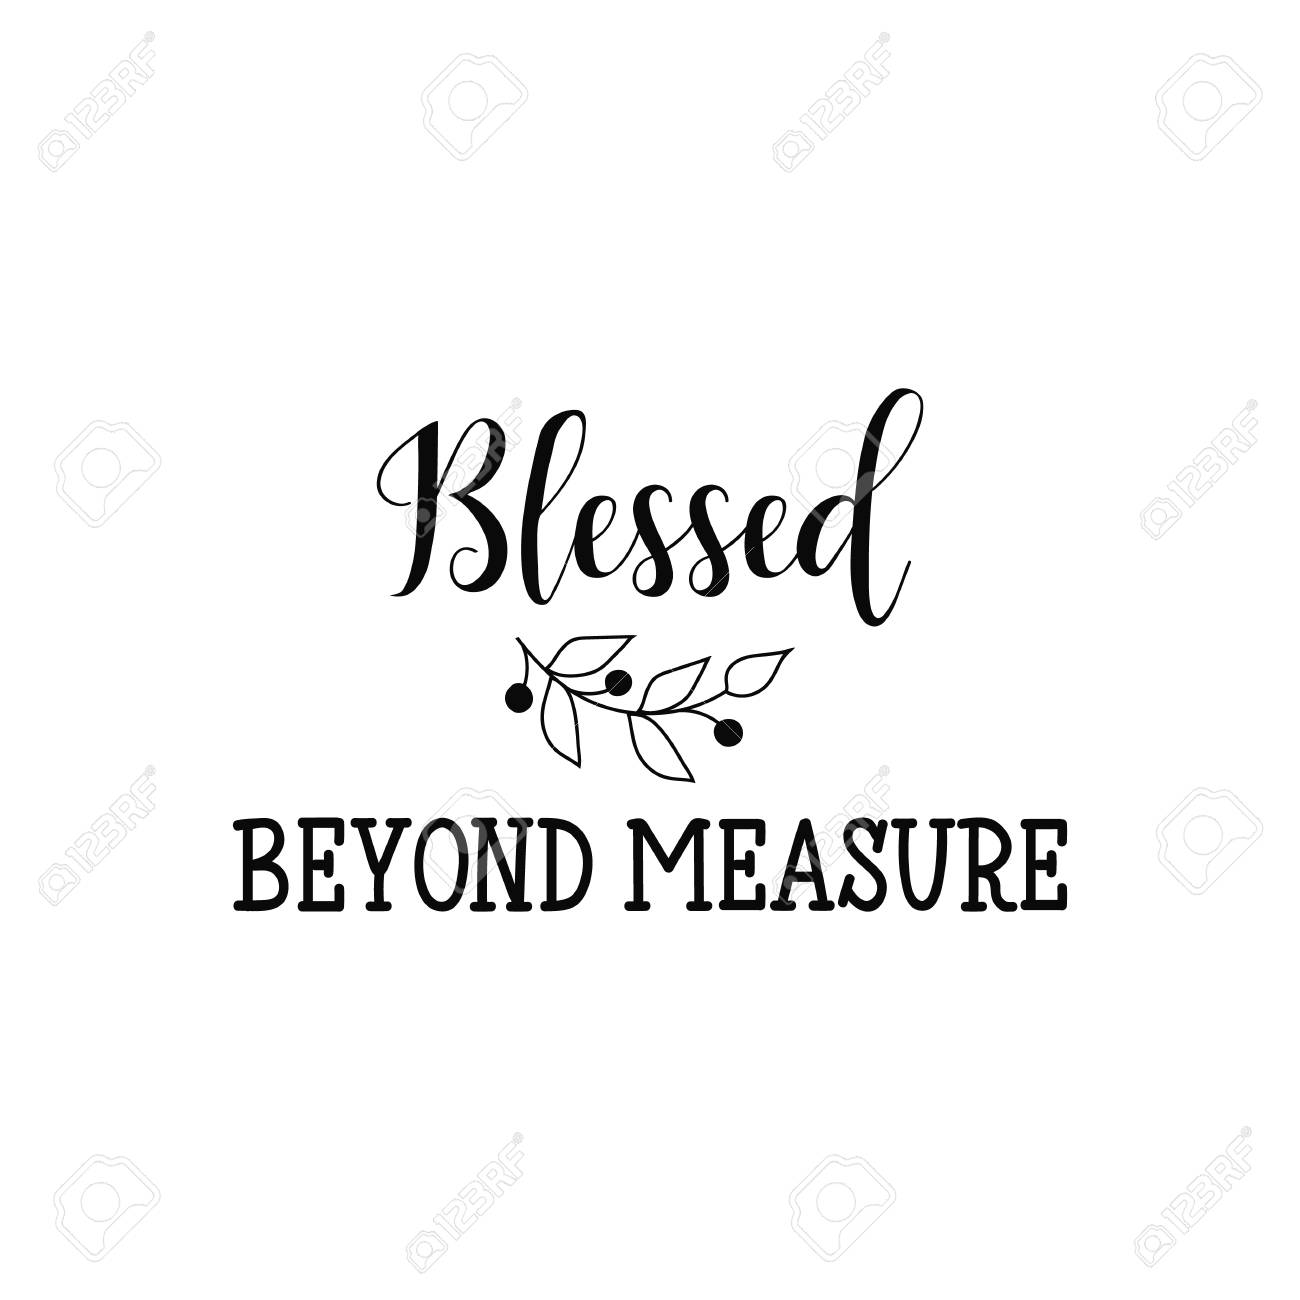 Blessed Beyond Measure Lettering Hand Drawn Vector Illustration